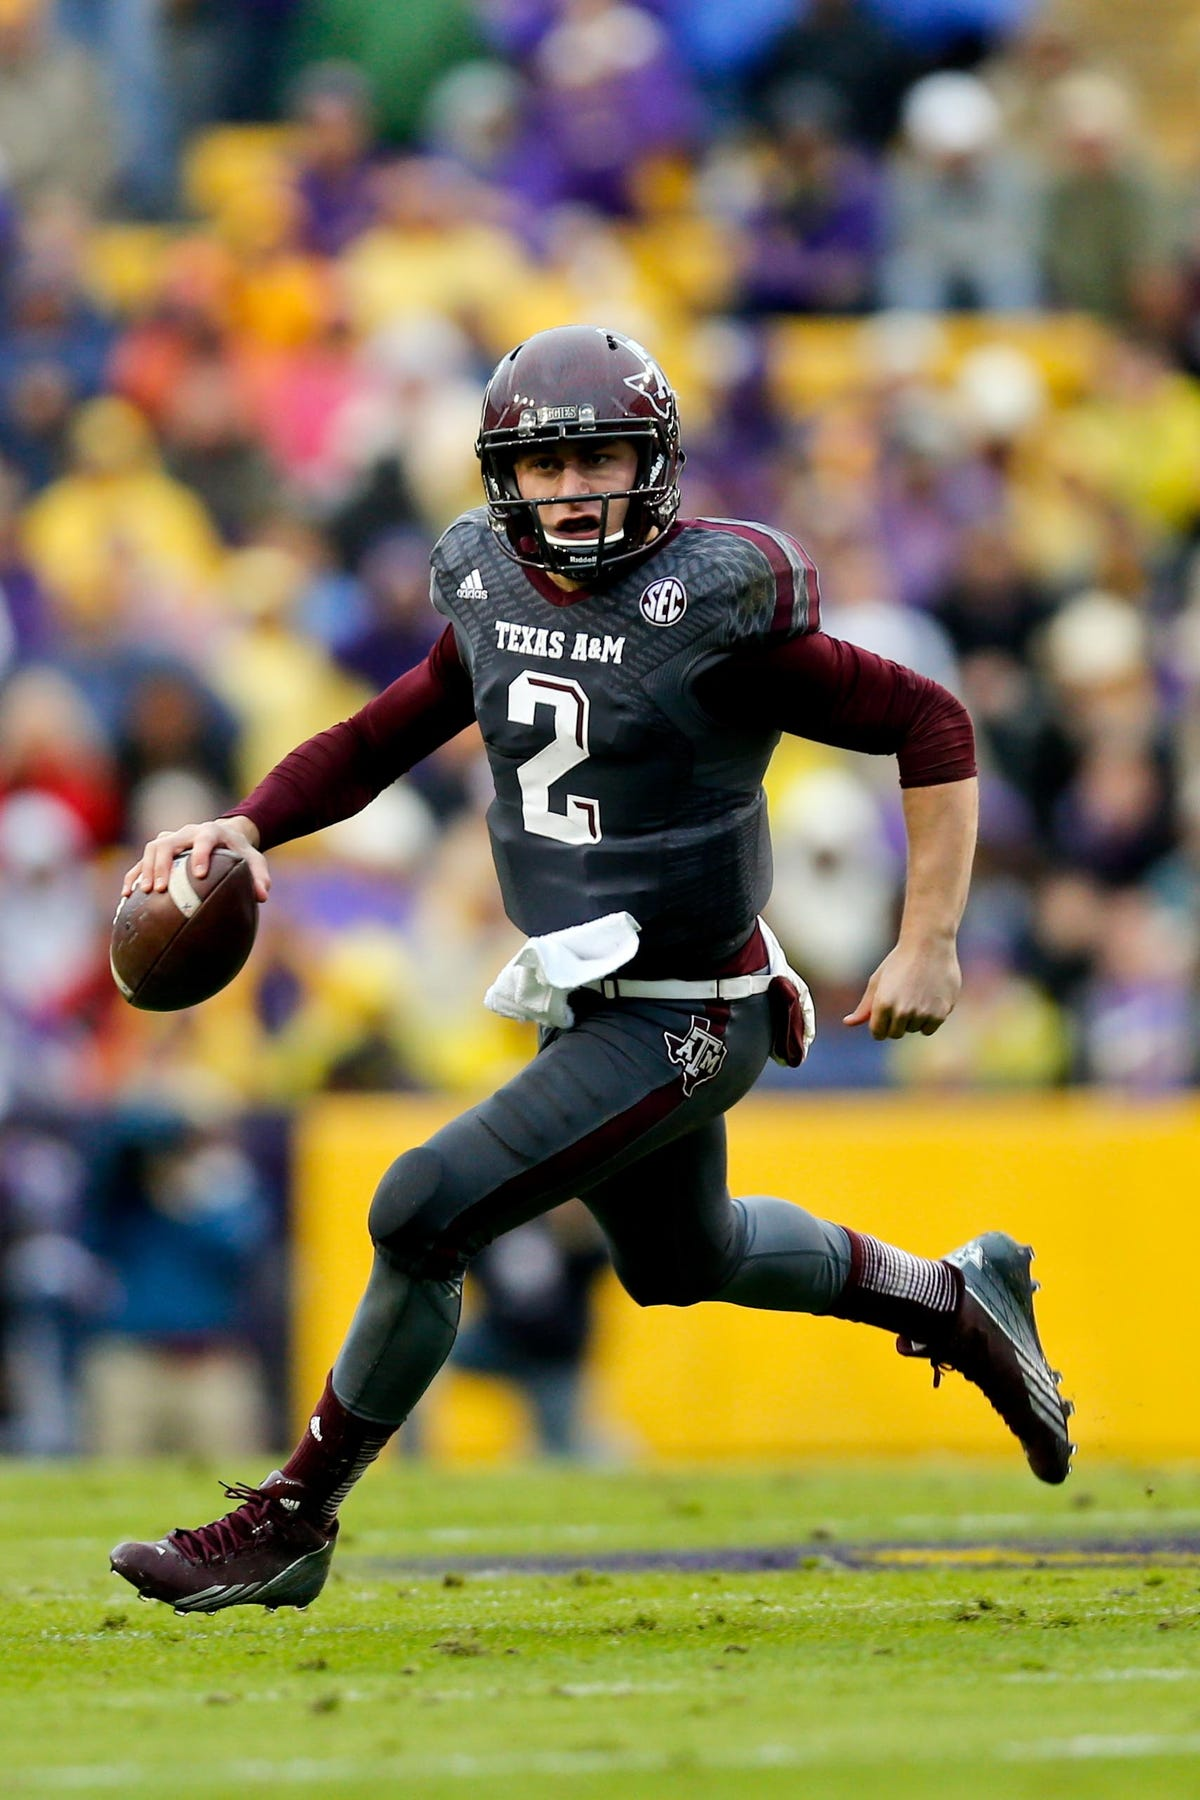 Mike Mayock on QB class intrigue, why Johnny Manziel reminds